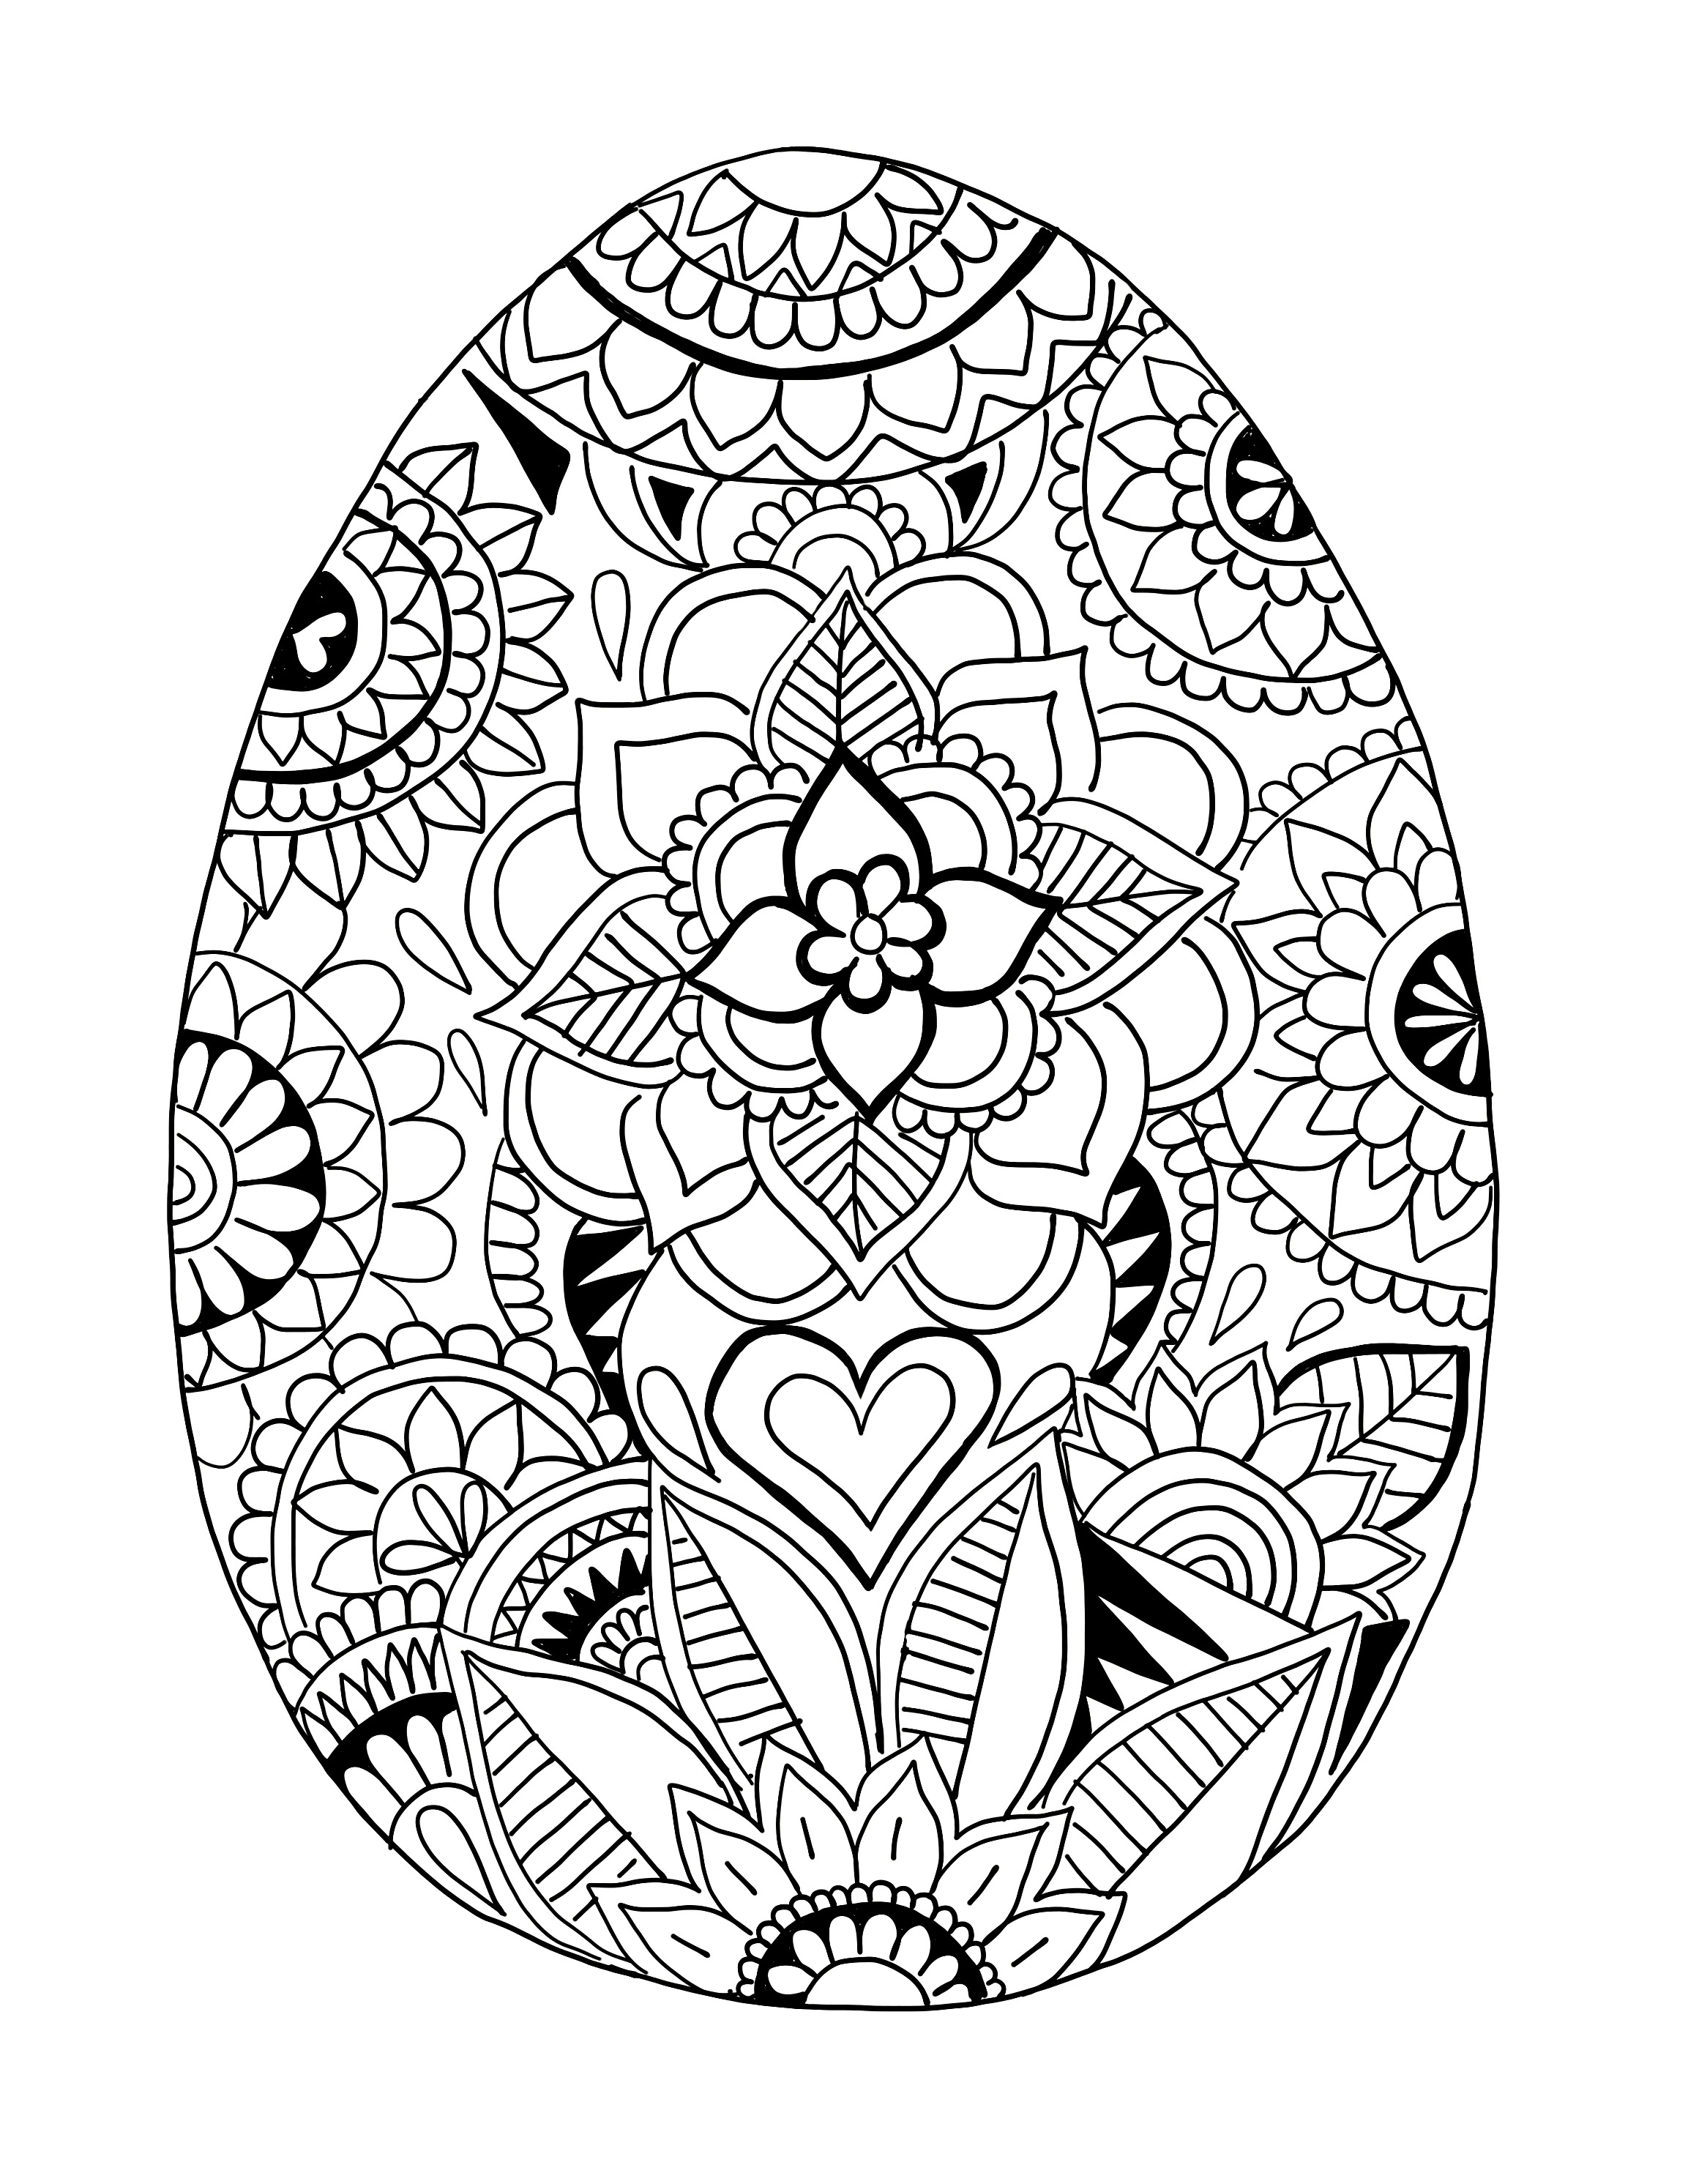 egg coloring page easter egg coloring pages free printable easter egg page coloring egg